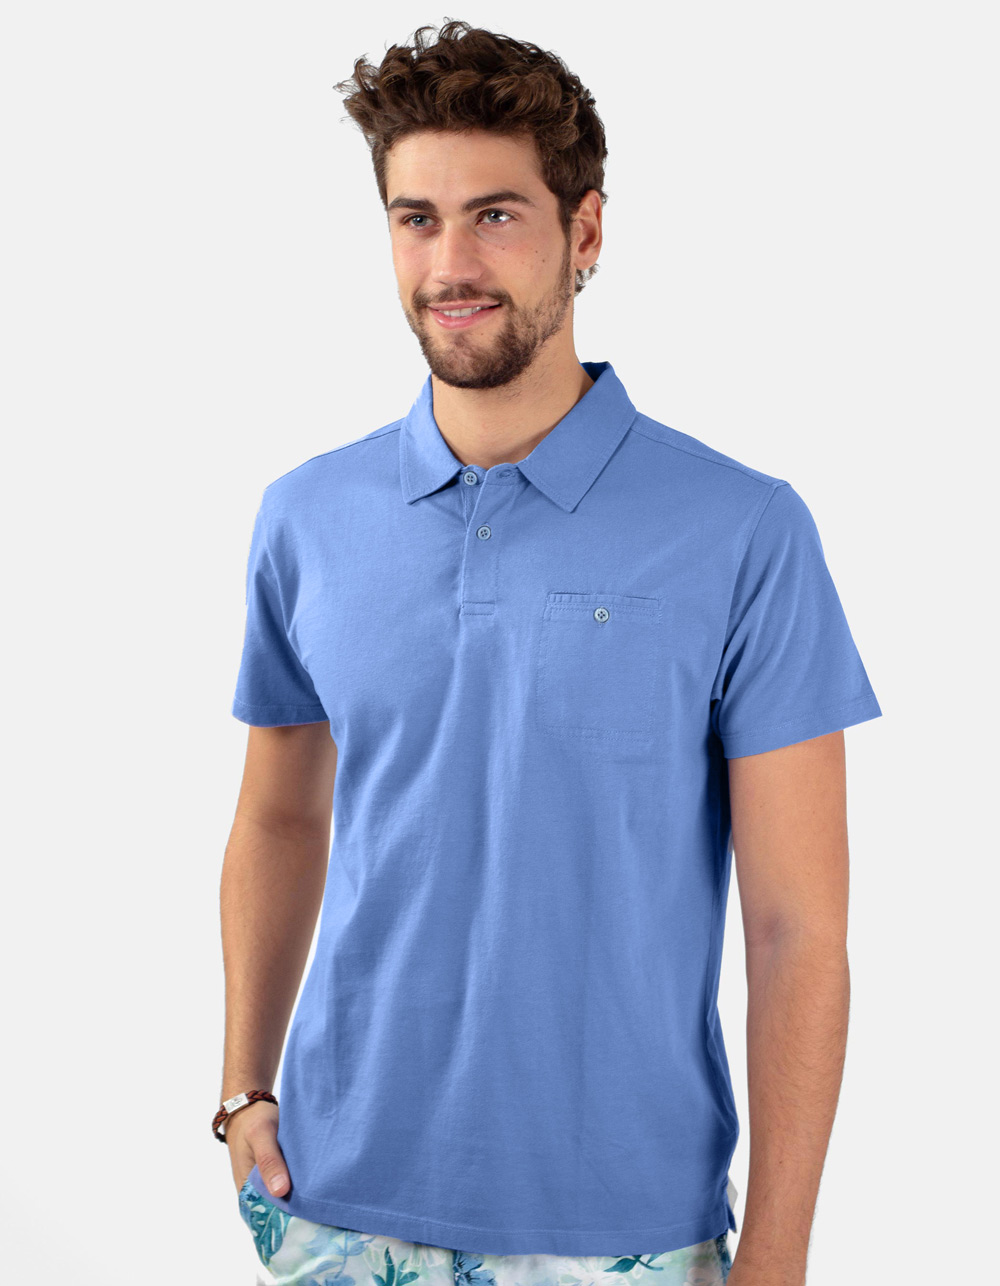 Royal blue pocket polo shirt